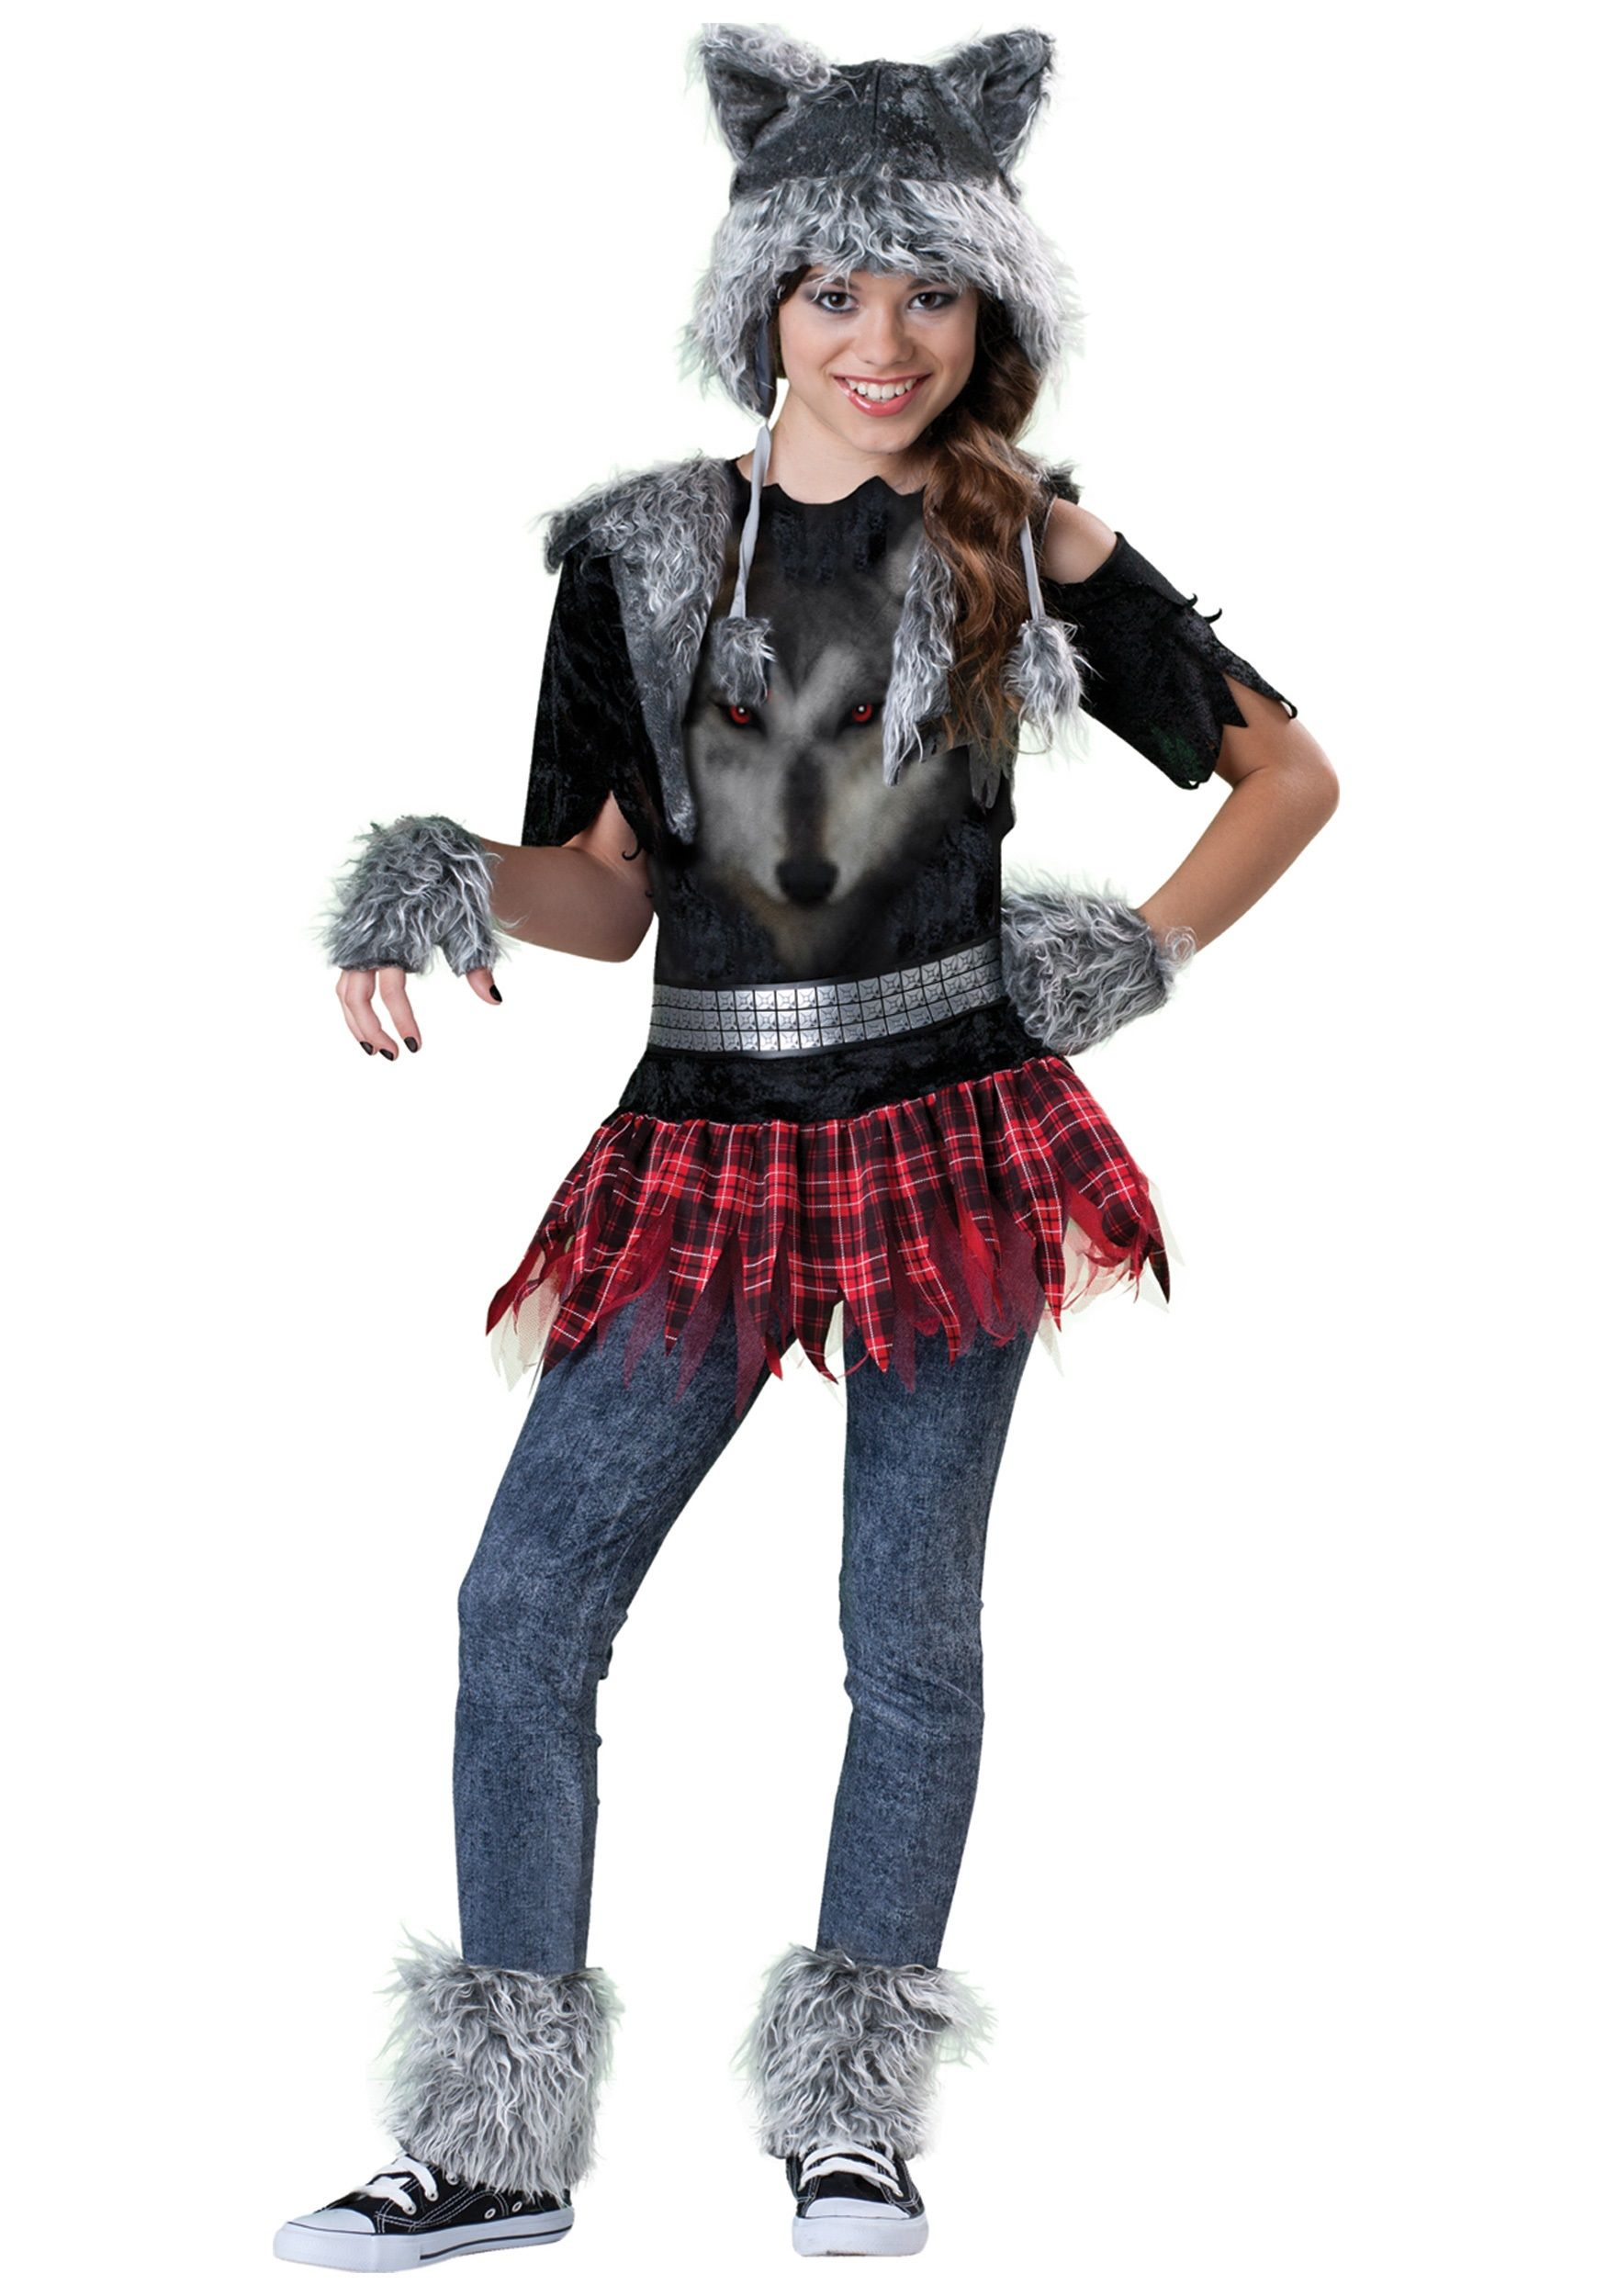 halloween ideas - Scary Halloween Costumes For Children